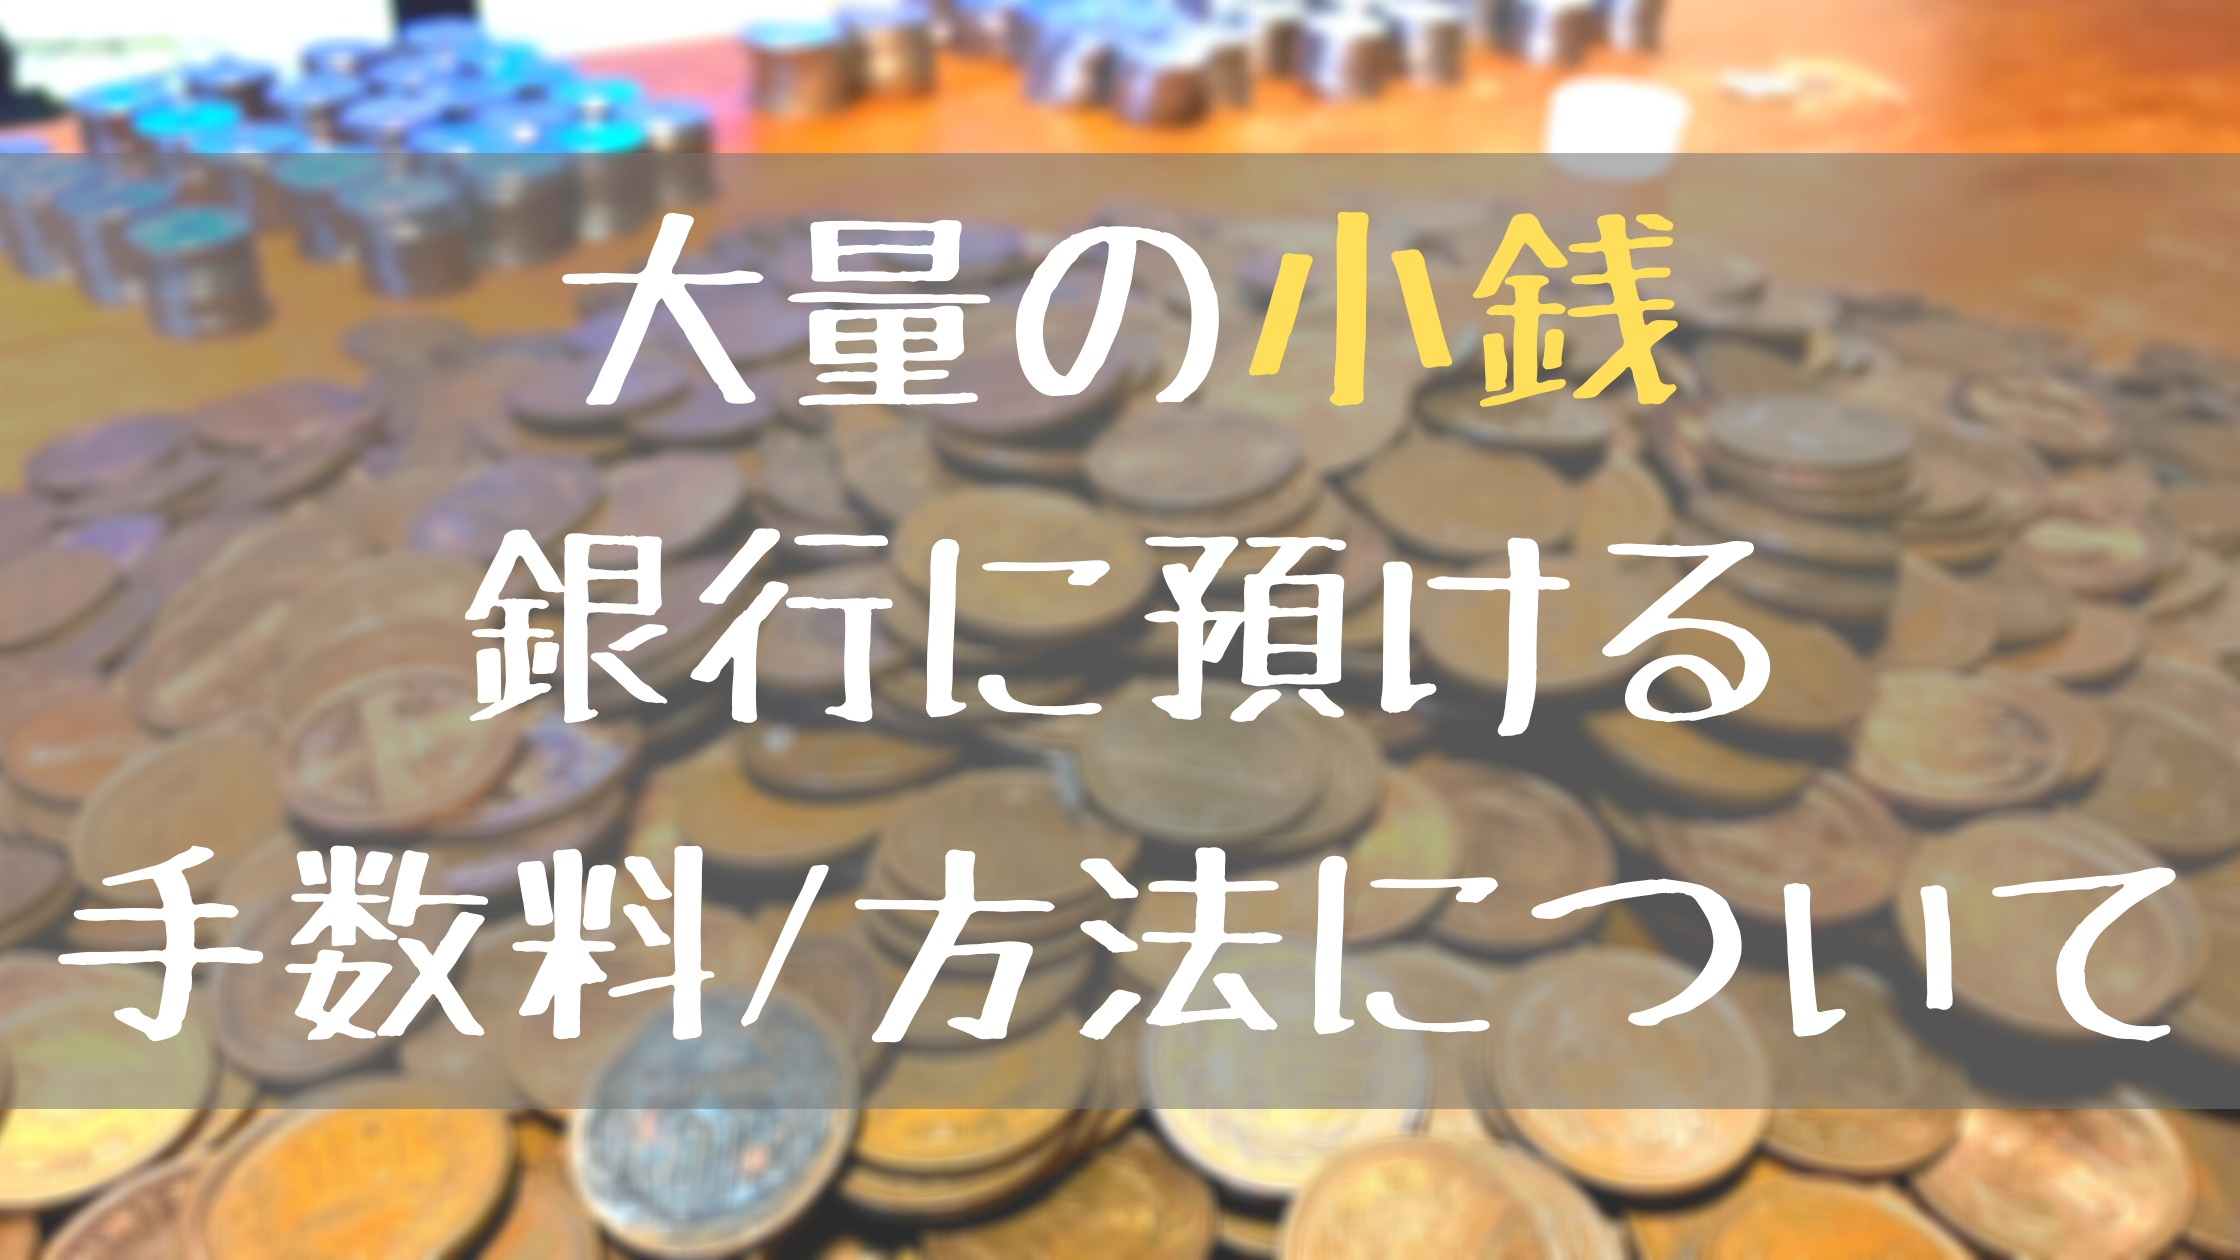 a large amount of coins